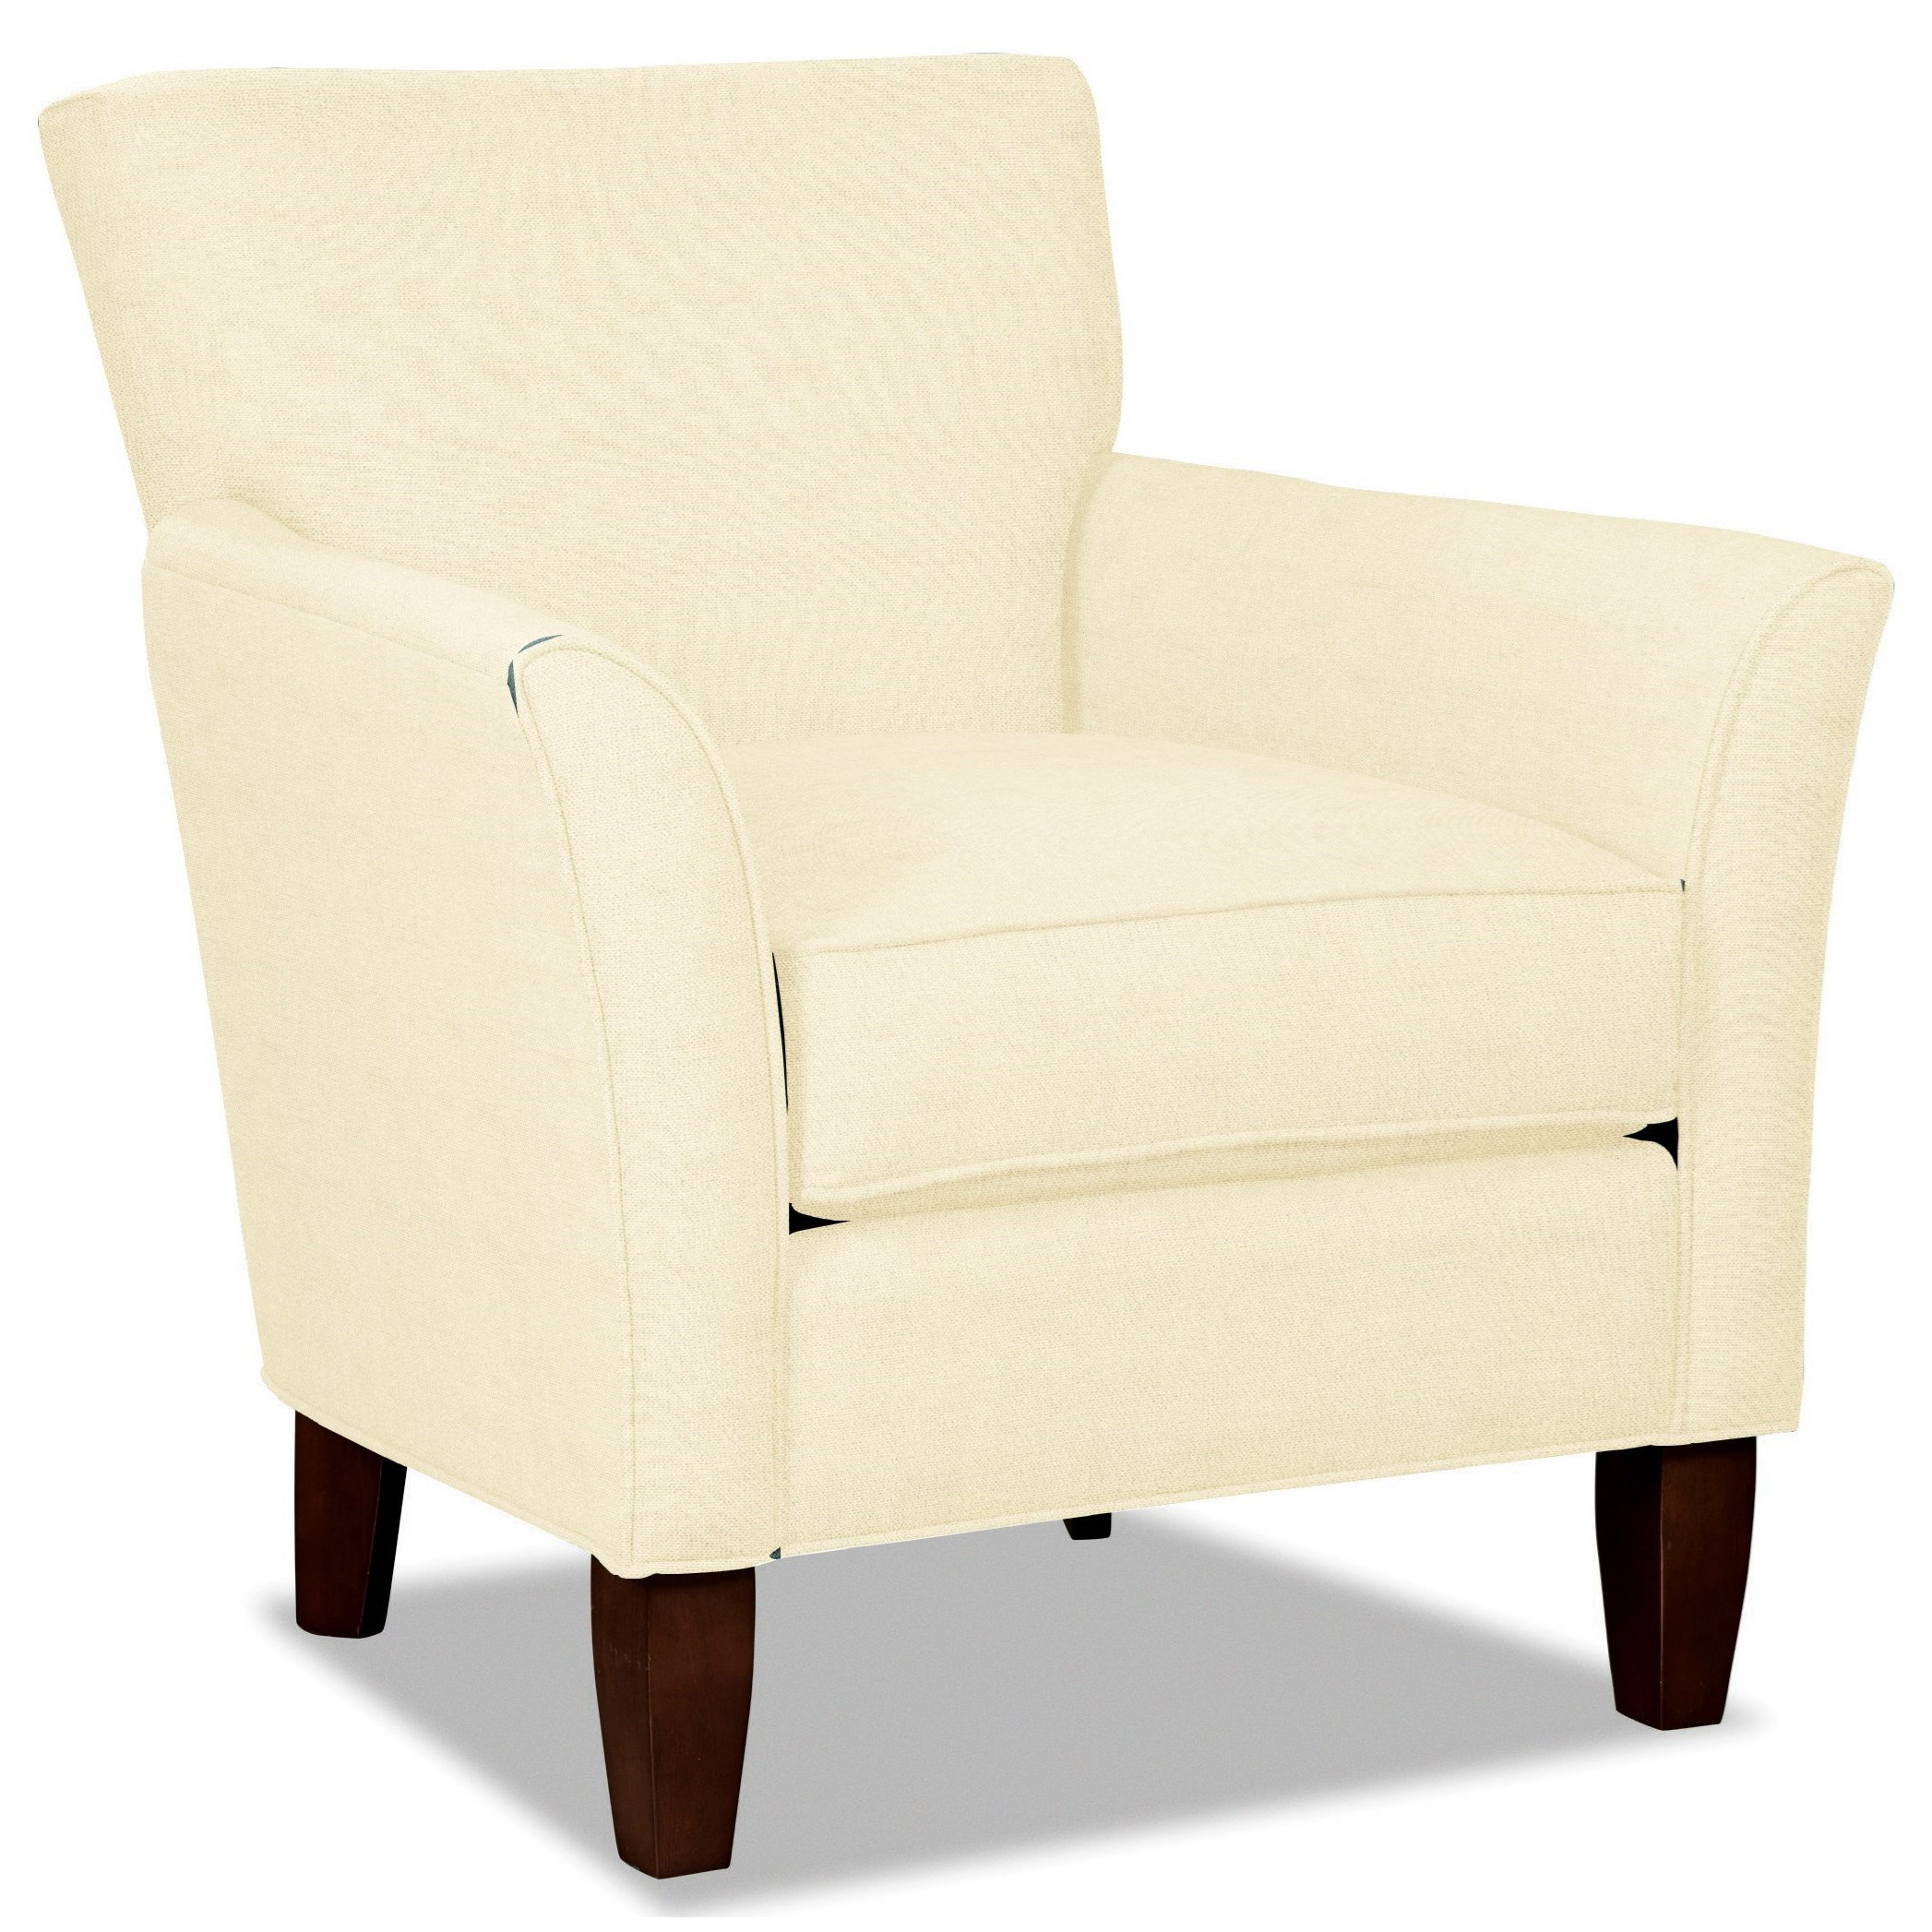 Craftmaster 060110 Accent Chair - Item Number: 060110-CYCLE-31